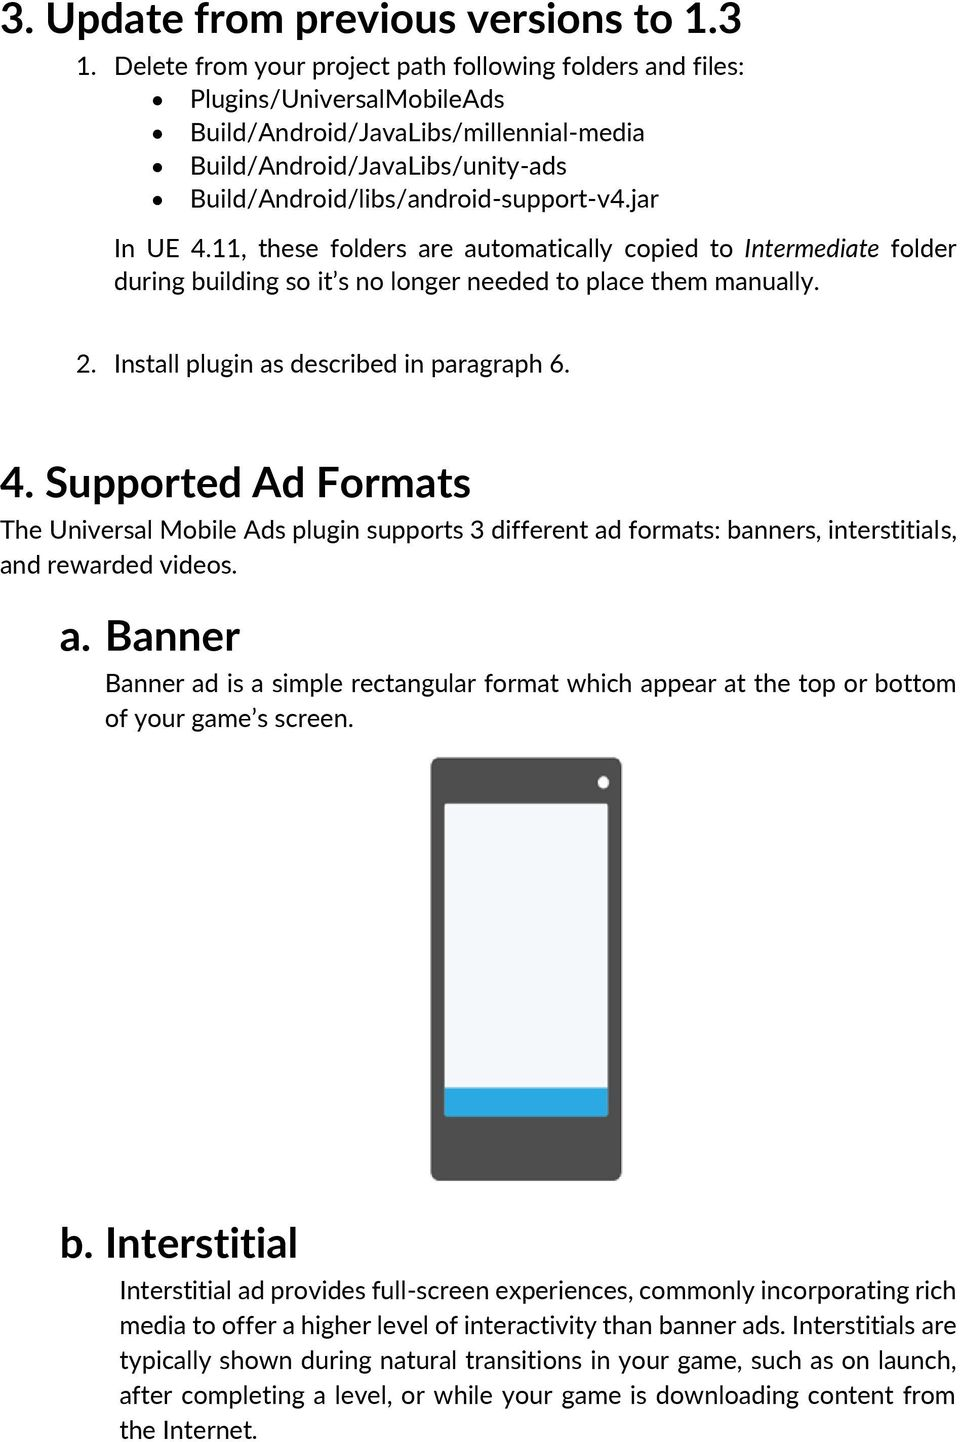 Universal Mobile Ads is a plugin for Unreal Engine 4 that enables